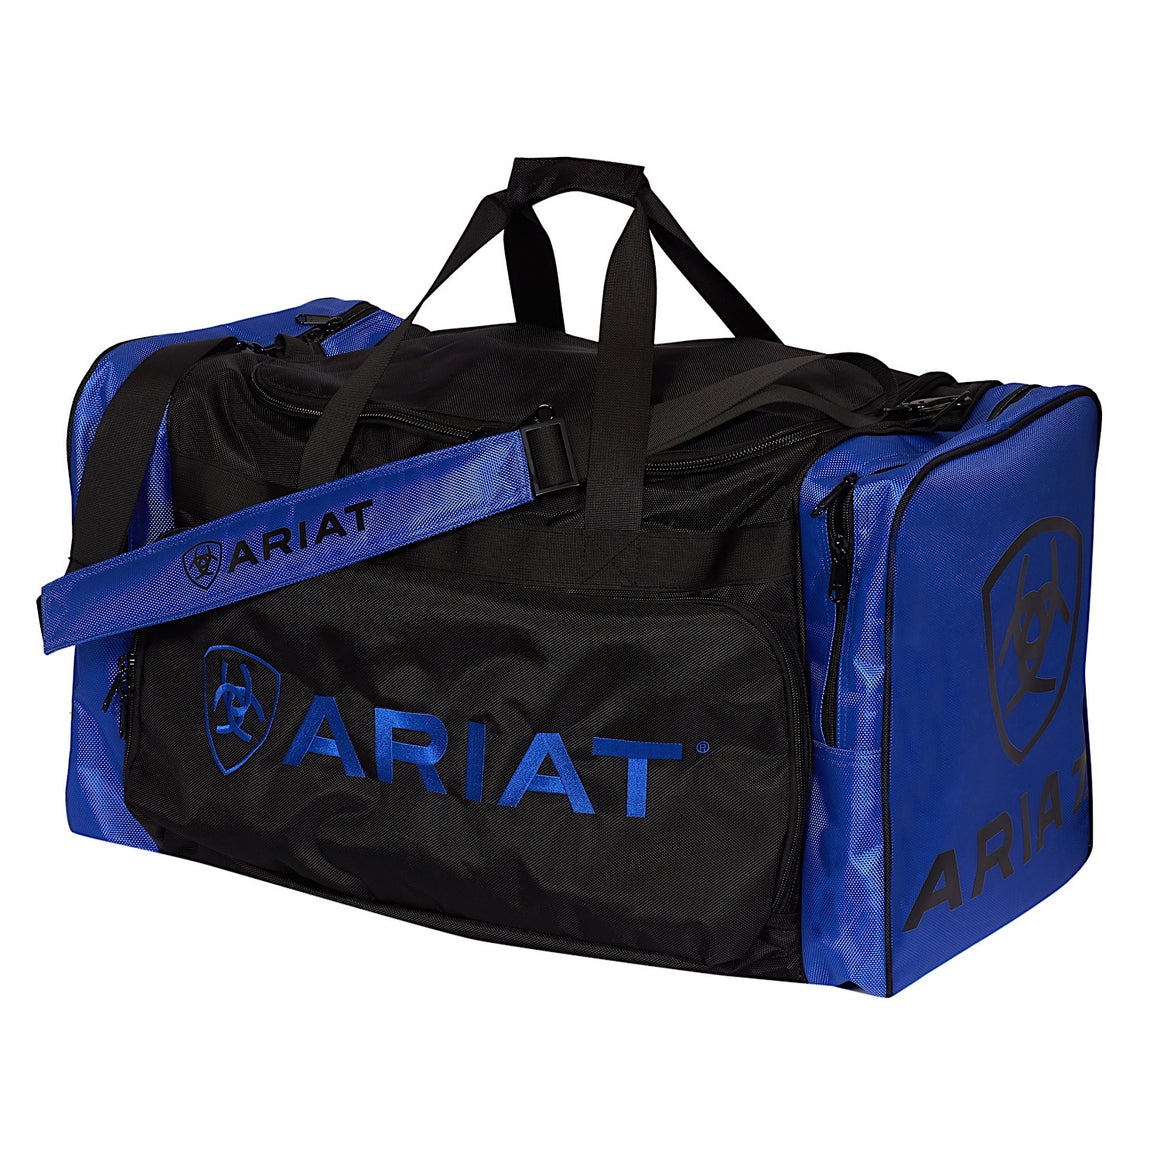 Ariat Gear Bag Cobalt/Black 4-600CB